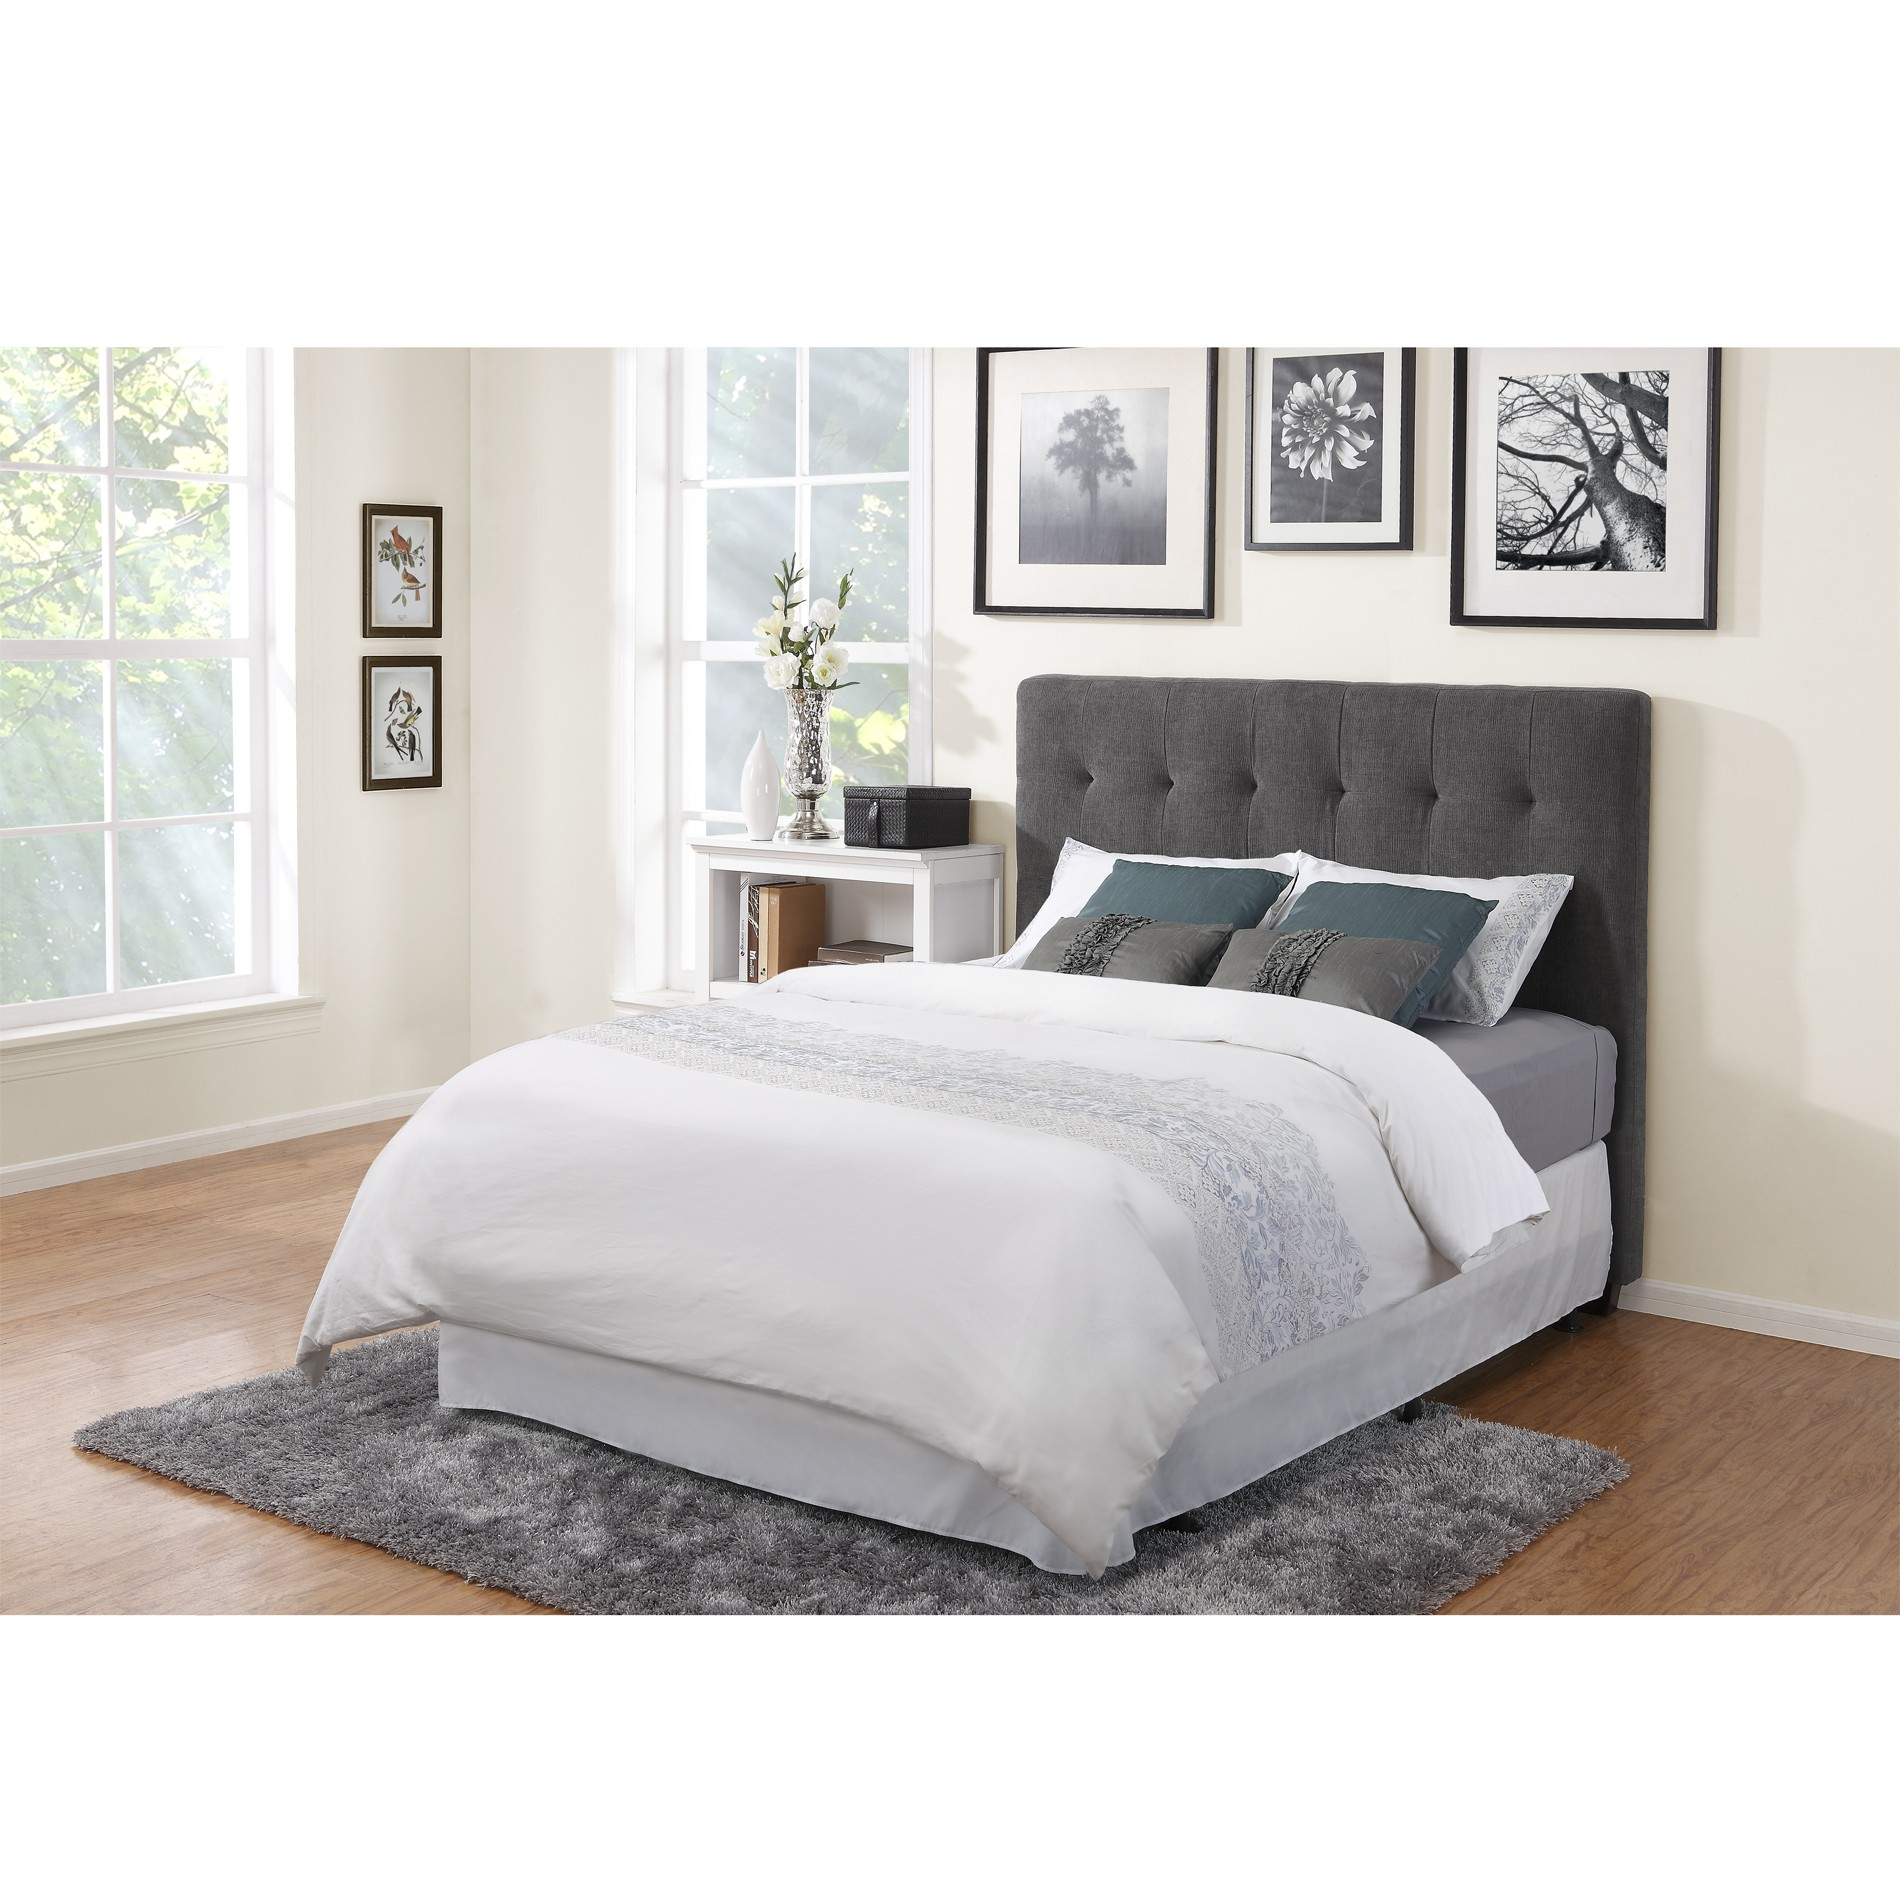 Grey headboard idea for modern bedroom grey shag bedroom rug wood floor idea white bedside table